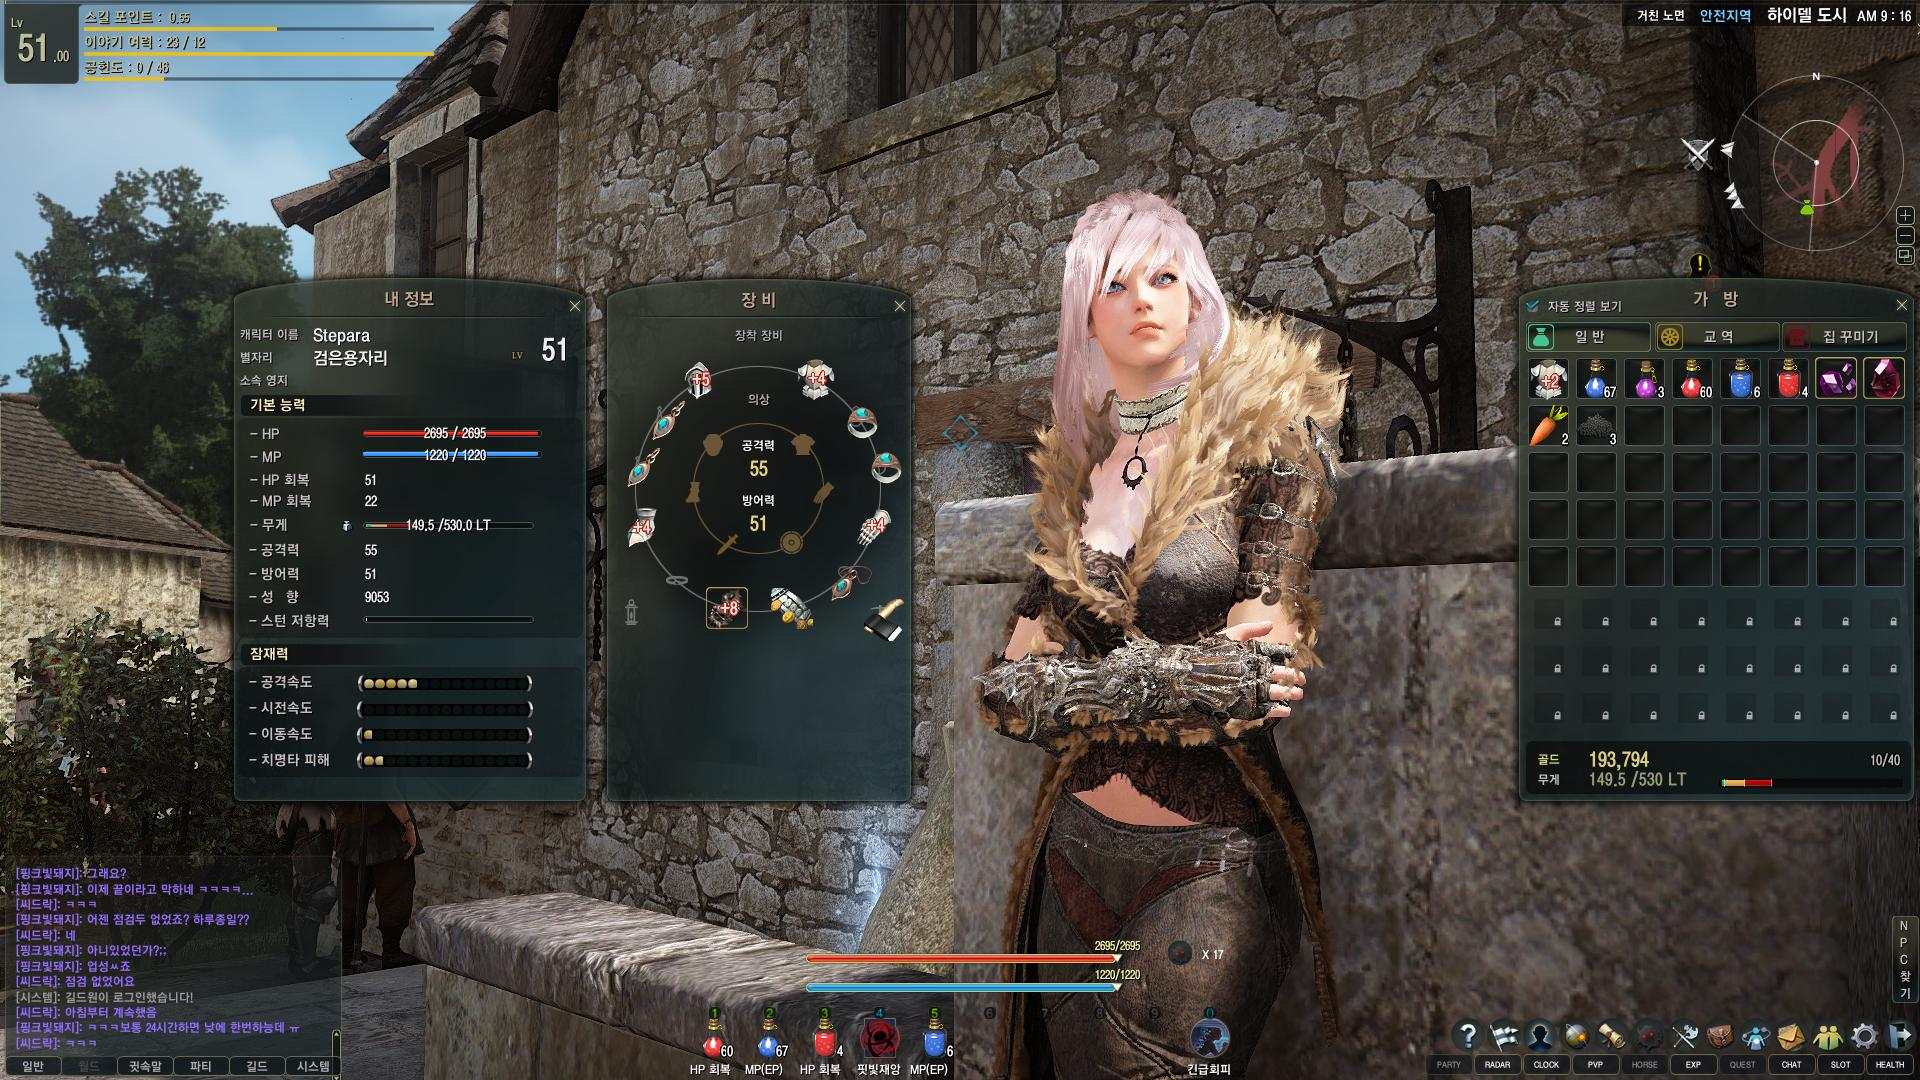 Black-Desert-Online-Simple-UI-and-Upgraded-Gear-Screenshot